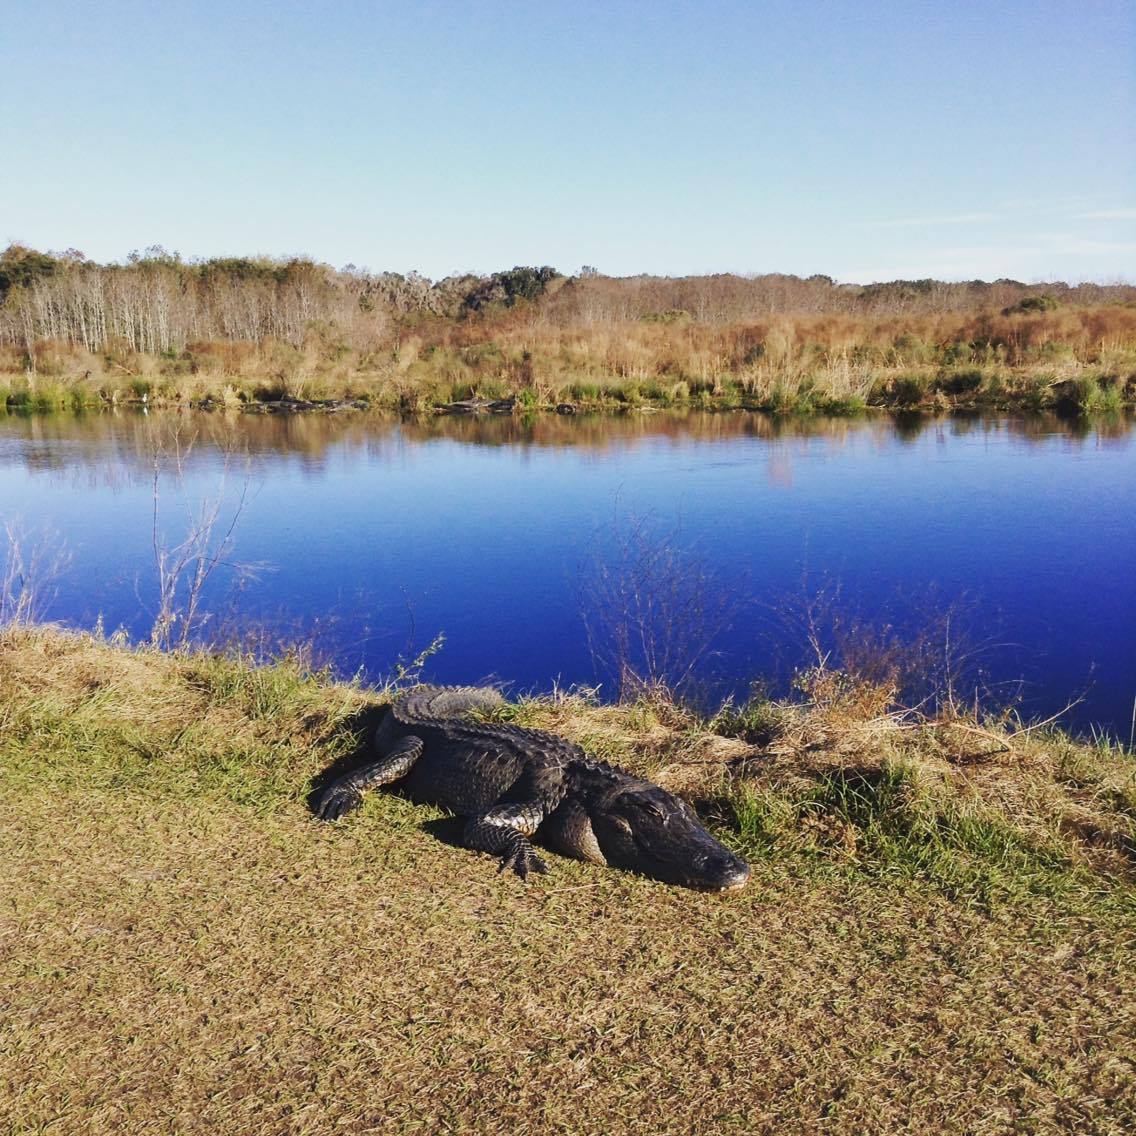 Gators Galore at Payne's Prairie